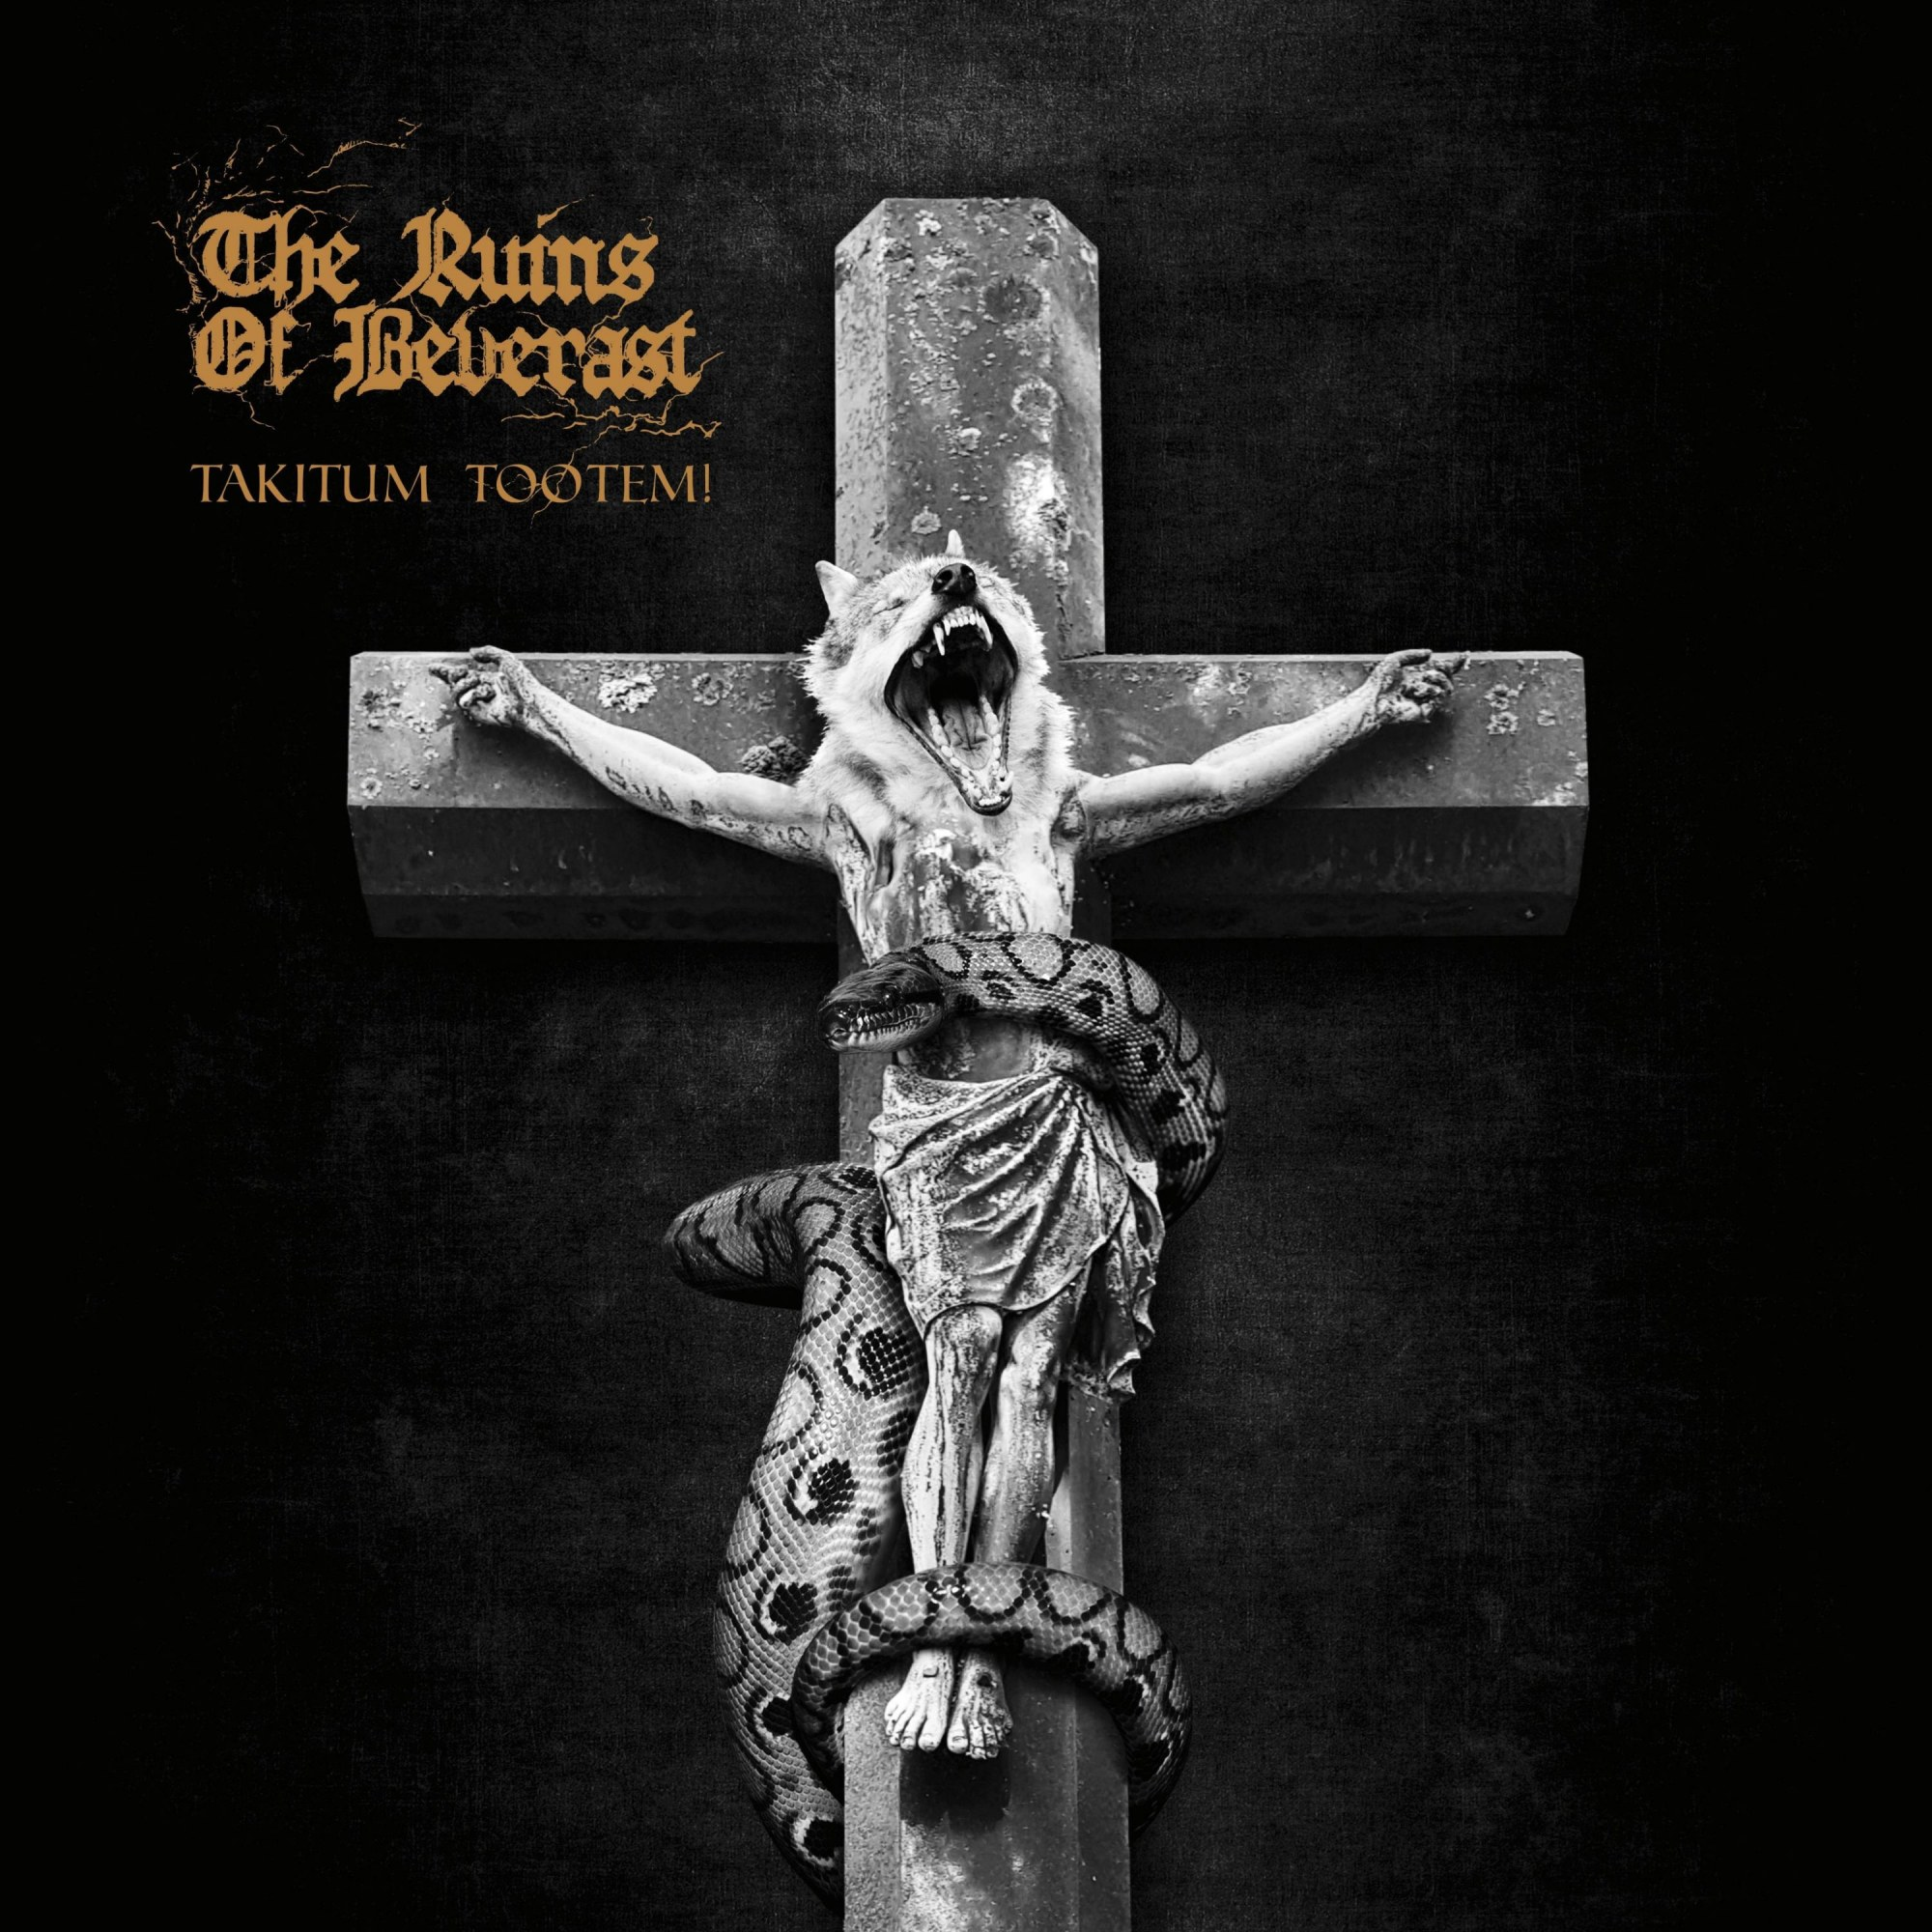 Review for The Ruins of Beverast - Takitum Tootem!